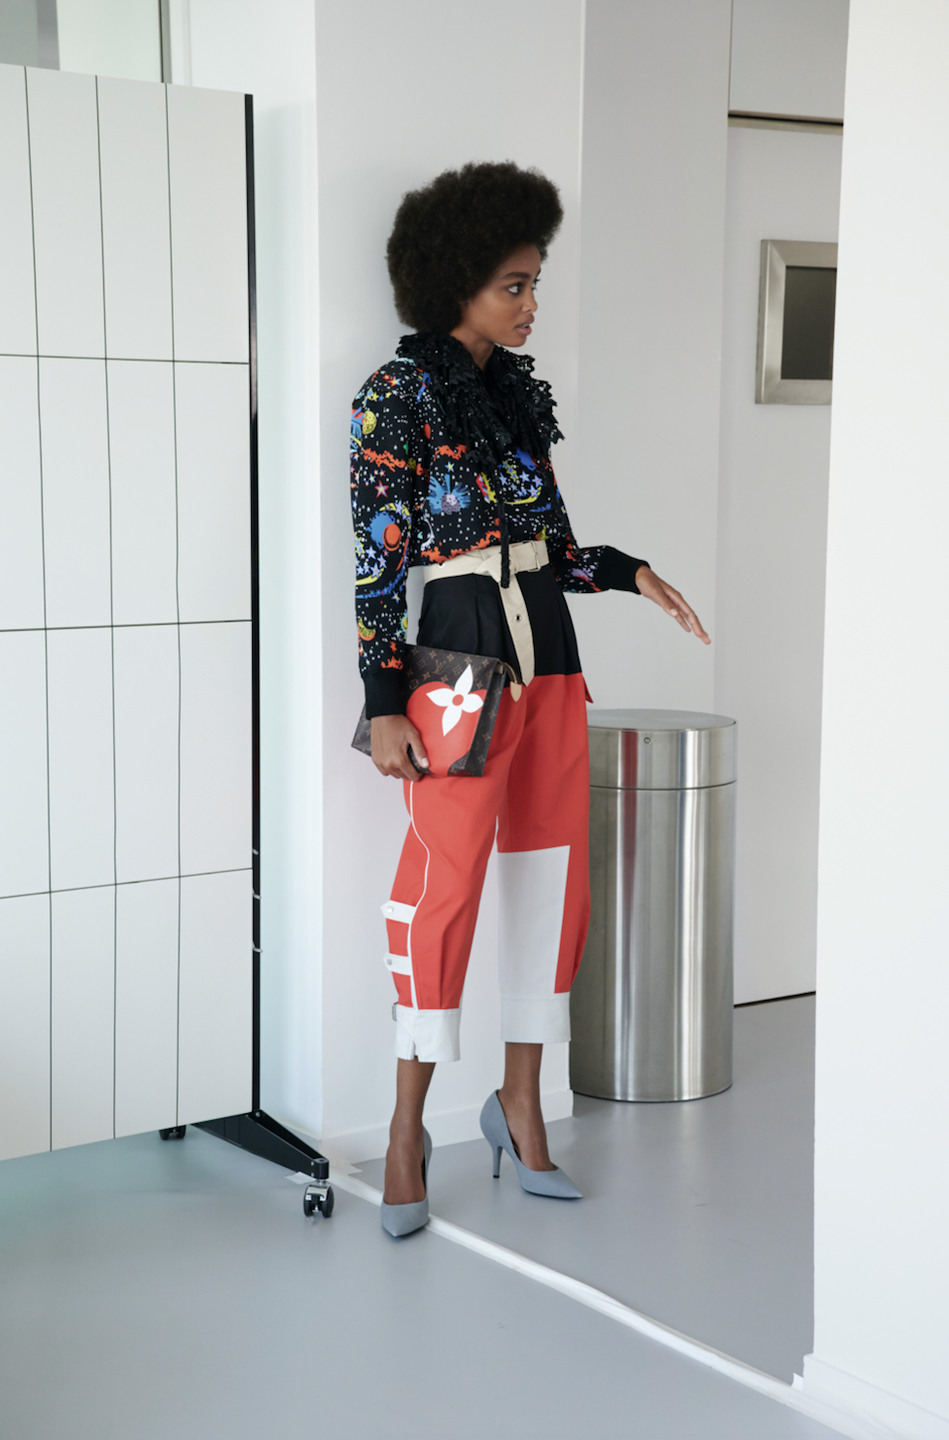 """<p>Louis Vuitton's cruise 2021 collection, titled """"Game On,"""" was shot at Creative Director Nicolas Ghesquière's studio in Paris. The looks were derived from the designer's visions of his past, present, and future. """"Game On is a lighthearted adventure in which all of<br>the House's spheres of expertise play a role, driven by passionate<br>craftsmanship, their winning card,"""" said the fashion house in a statement.<br></p>"""